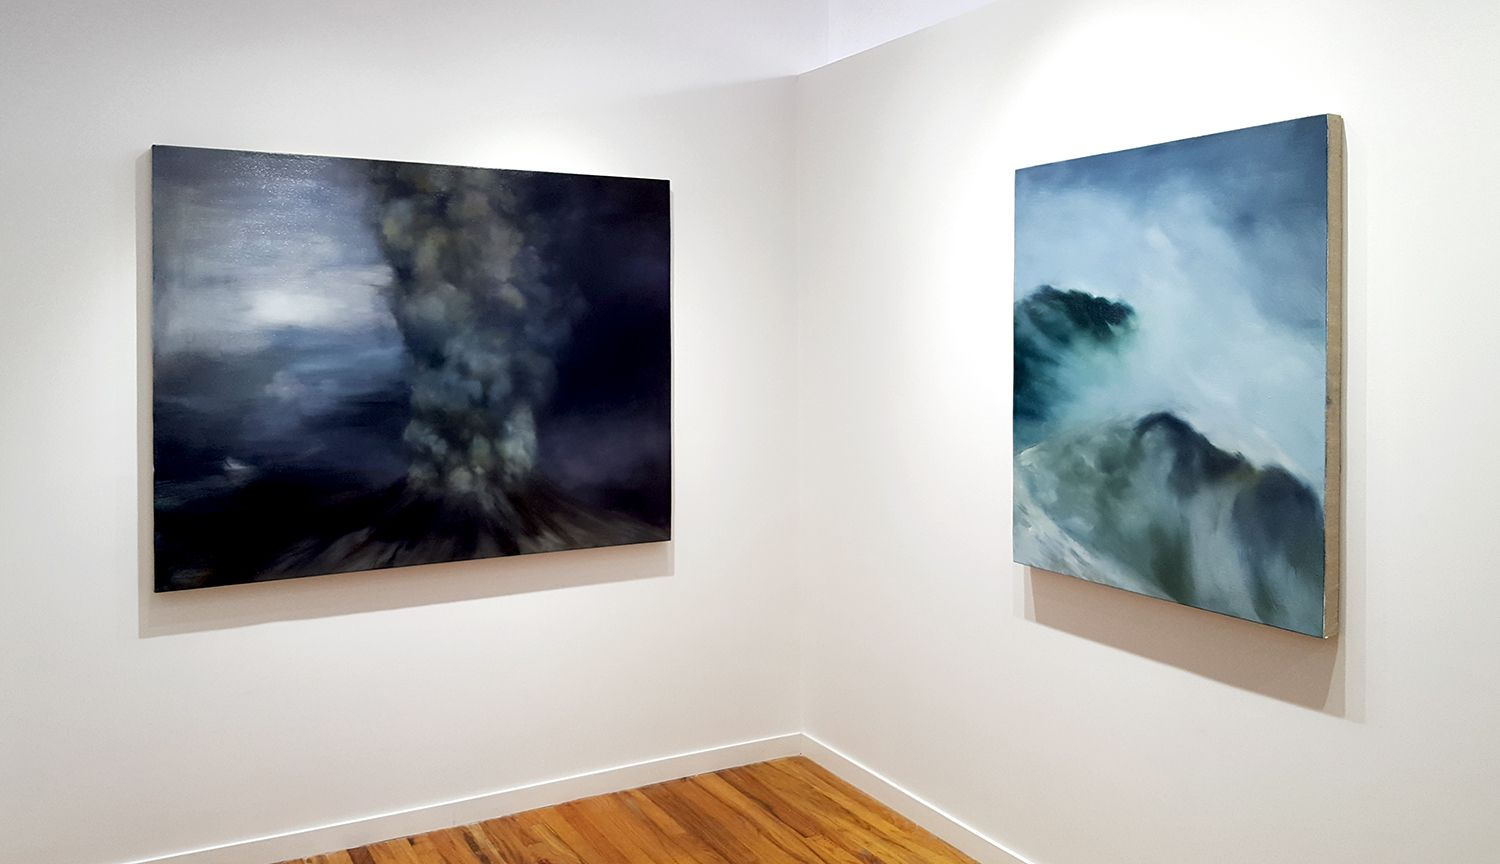 karen marston natural disasters paintings installation